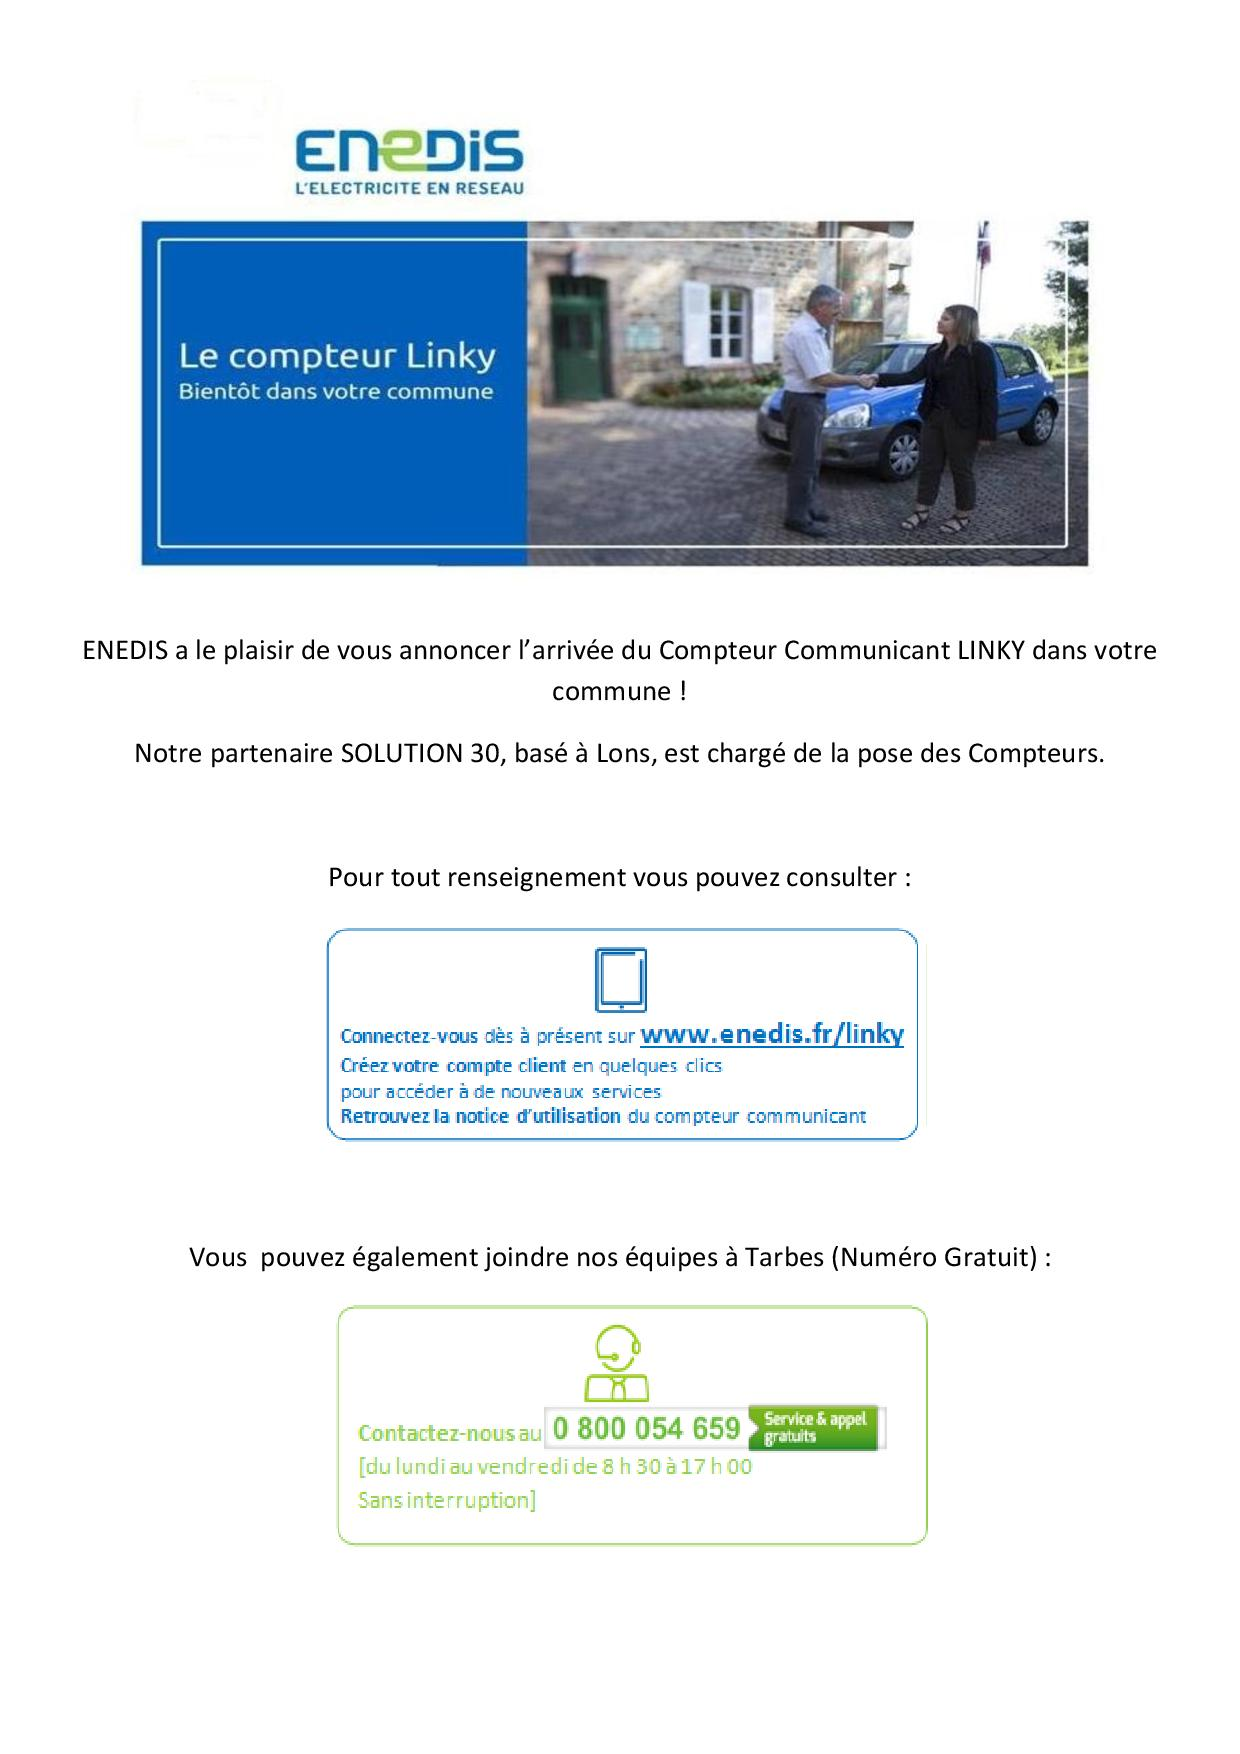 Affiche Mairies Bearn SOLUTION 30 arrivee LINKY page 001